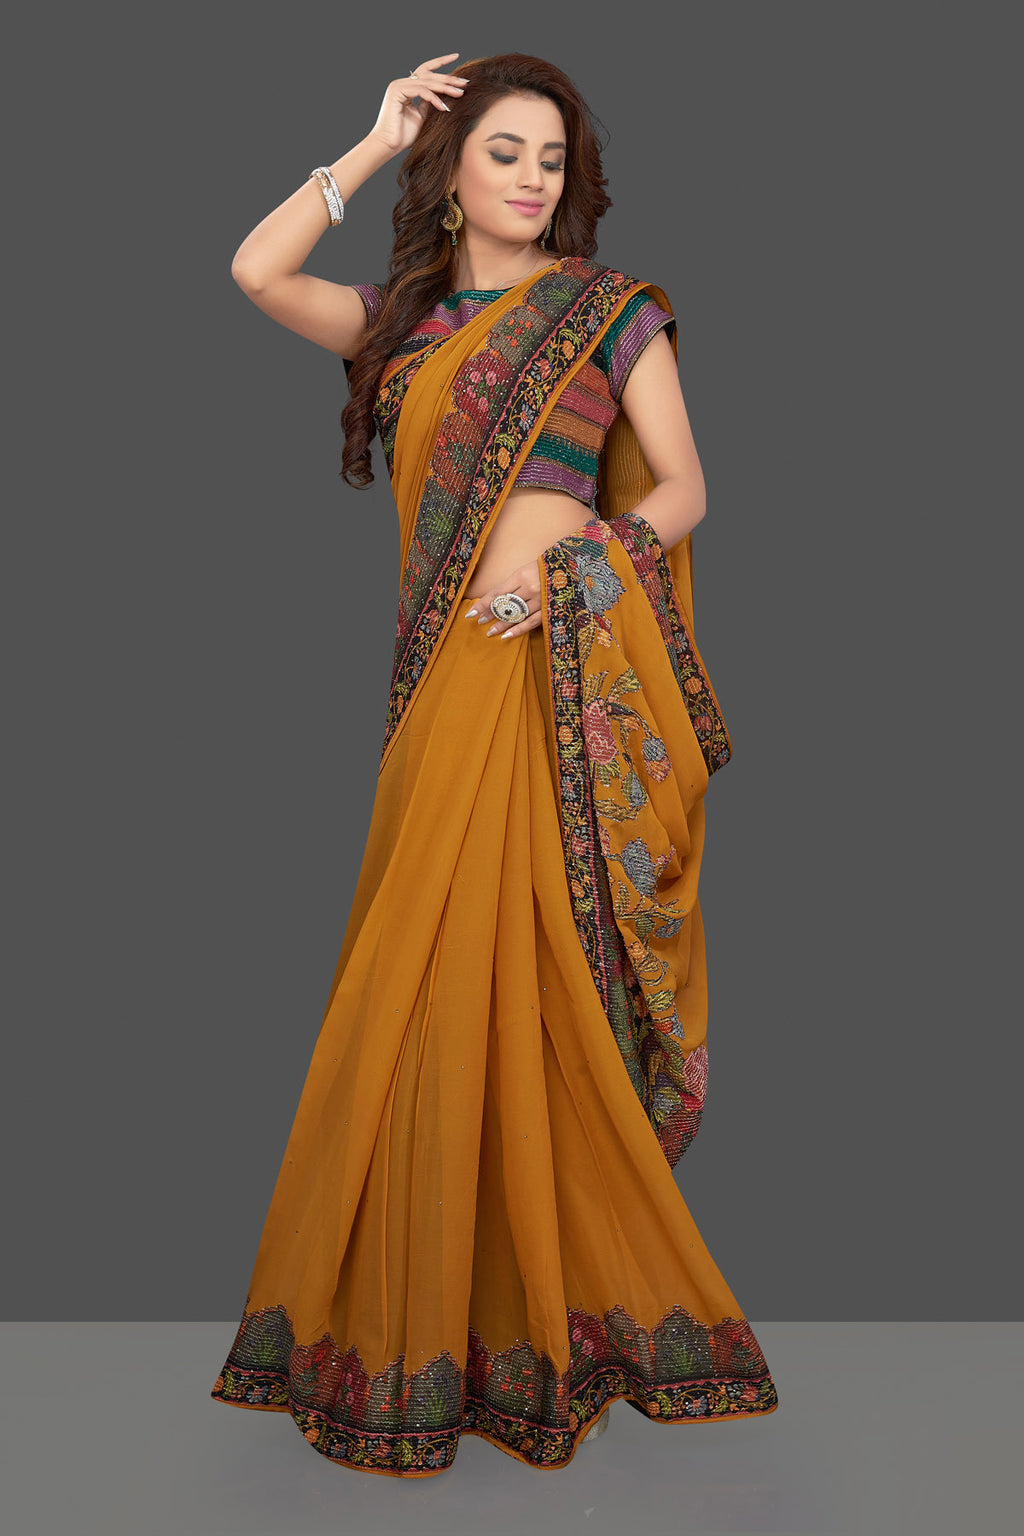 Buy stunning mustard color georgette saree online in USA with multicolor border and sari blouse. Make you presence felt with your Indian style on special occasions in beautiful designer sarees, handwoven sarees, muga sarees, georgette sarees from Pure Elegance Indian fashion store in USA.-full view